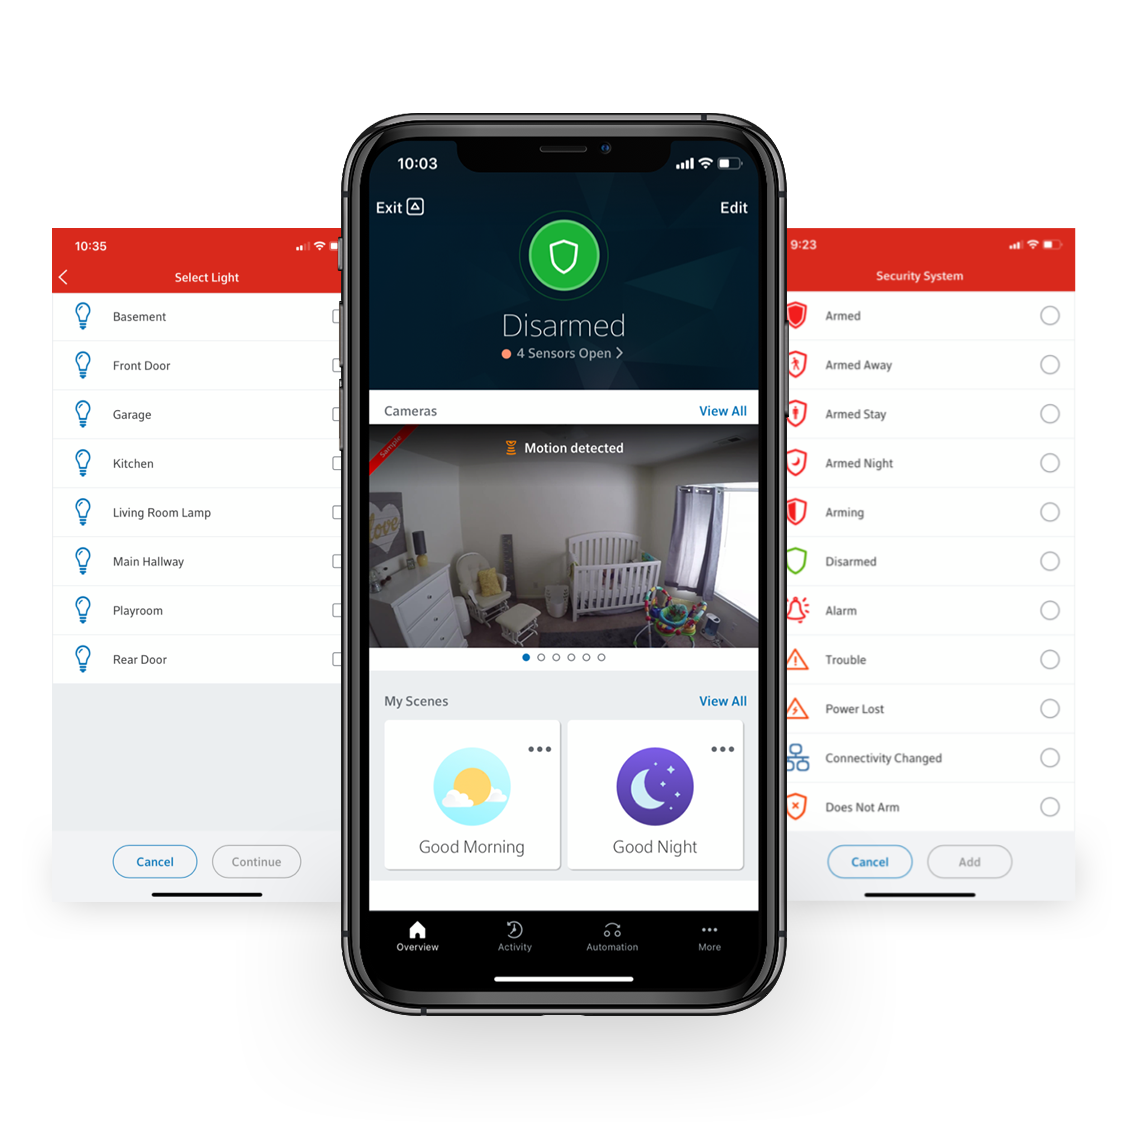 Control and monitor your home remotely with the Smart Home Monitoring app